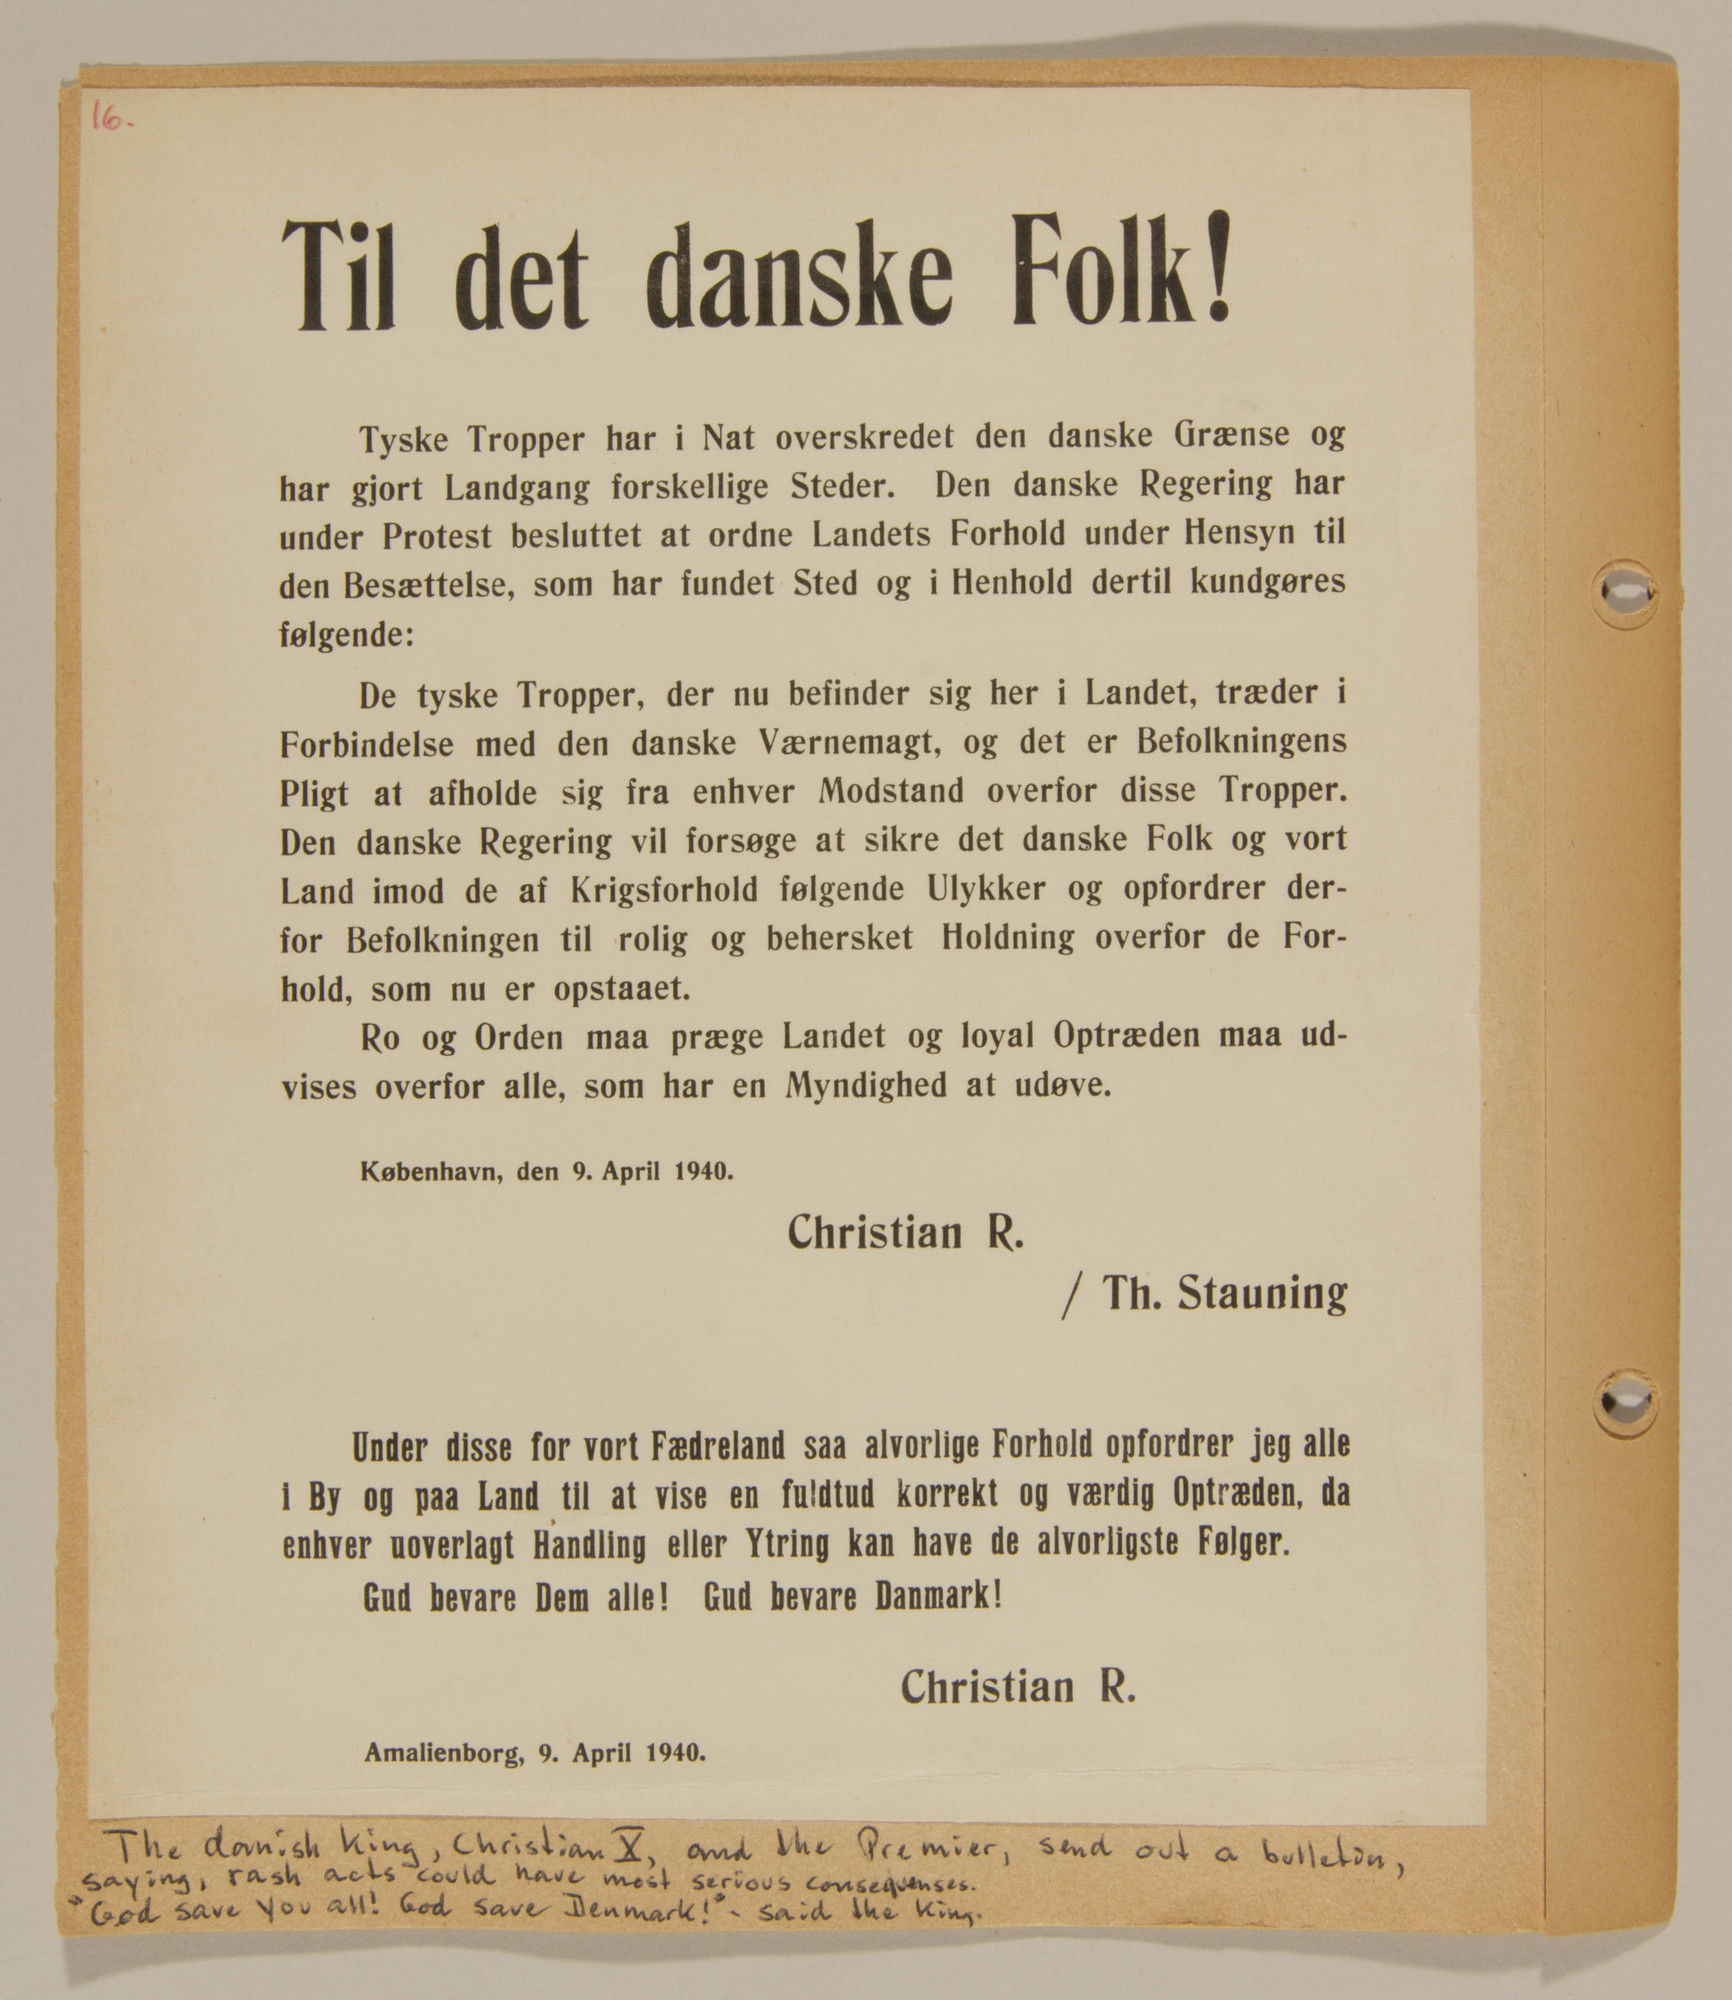 Page from volume one of a set of scrapbooks compiled by Bjorn Sibbern, a Danish policeman and resistance member, documenting the German occupation of Denmark.  This letter contains a letter by King Christian warning the populace not to engage in rash acts.